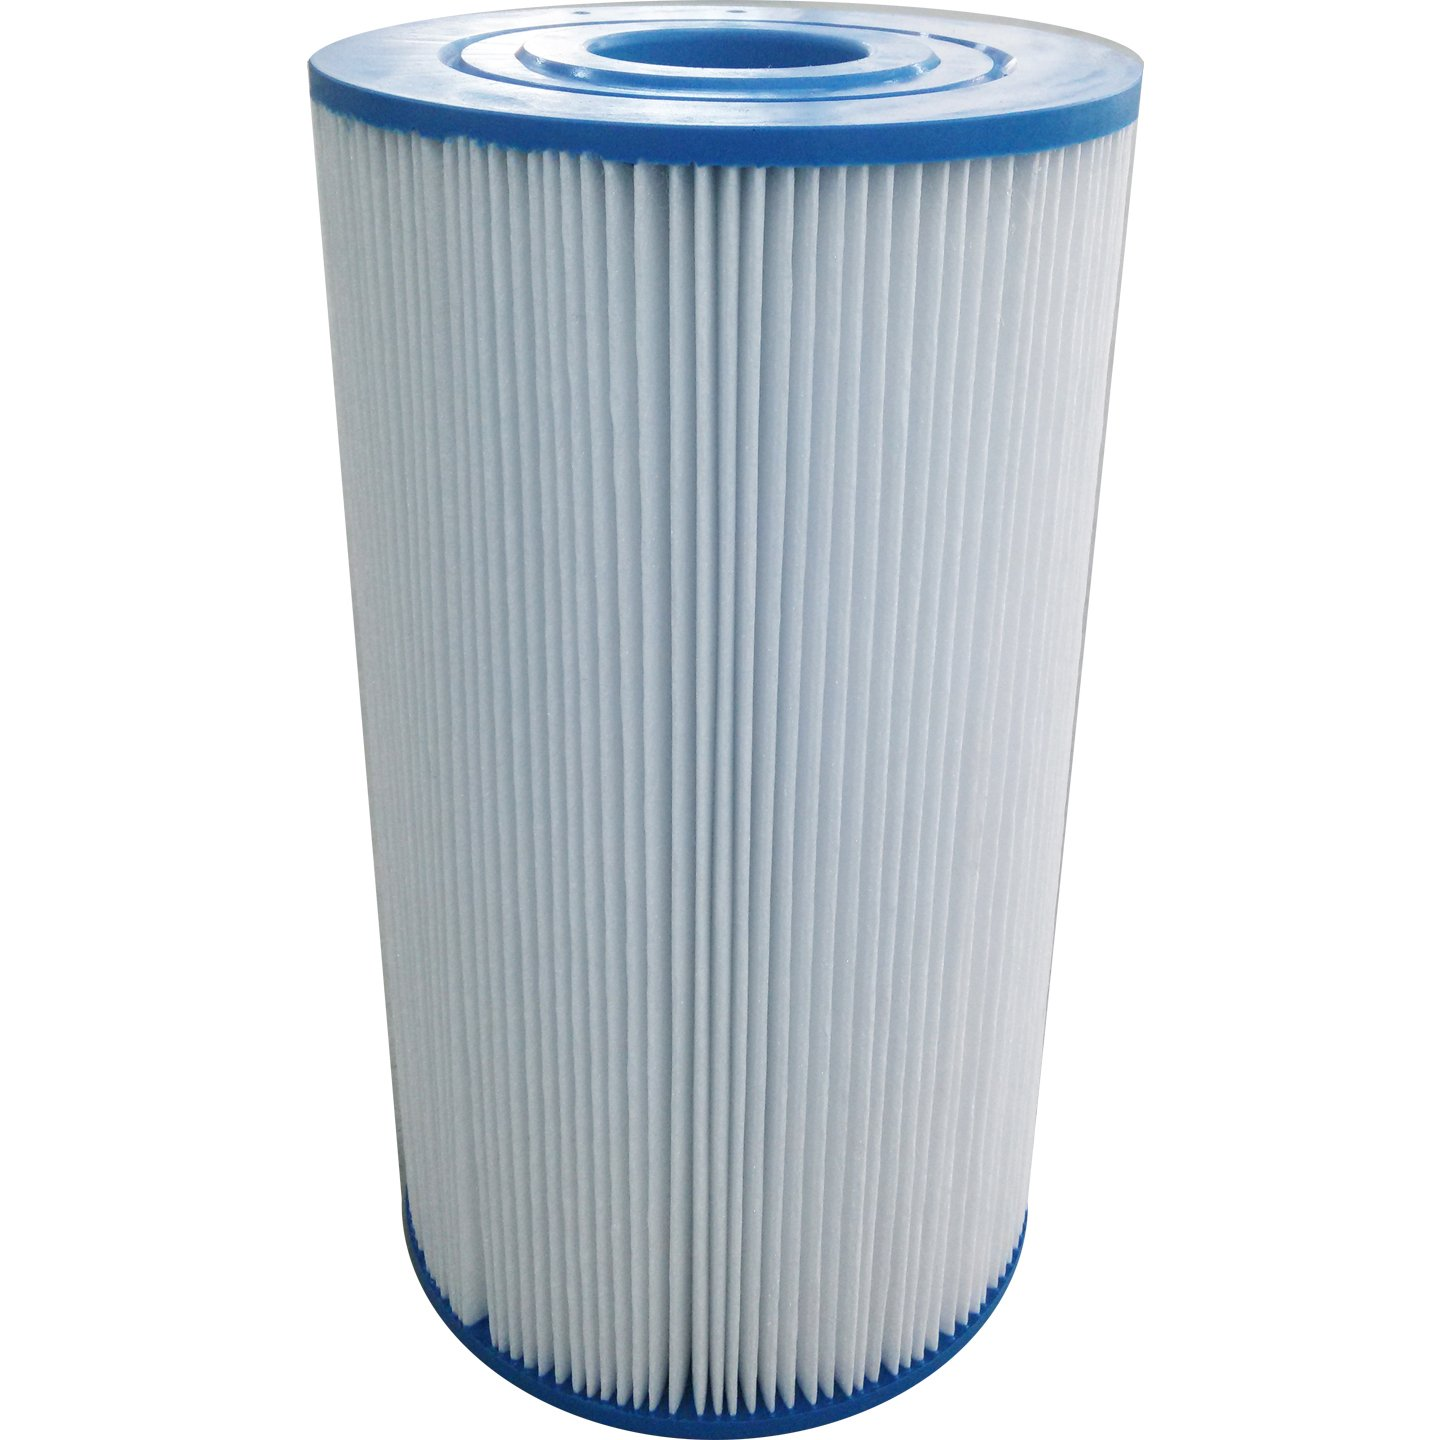 Tier1 Watkins 31489, Pleatco PWK30, Filbur FC-3915, Unicel C-6430 Comparable Replacement Spa Filter for Hot Spring Spas & Watkin Spas